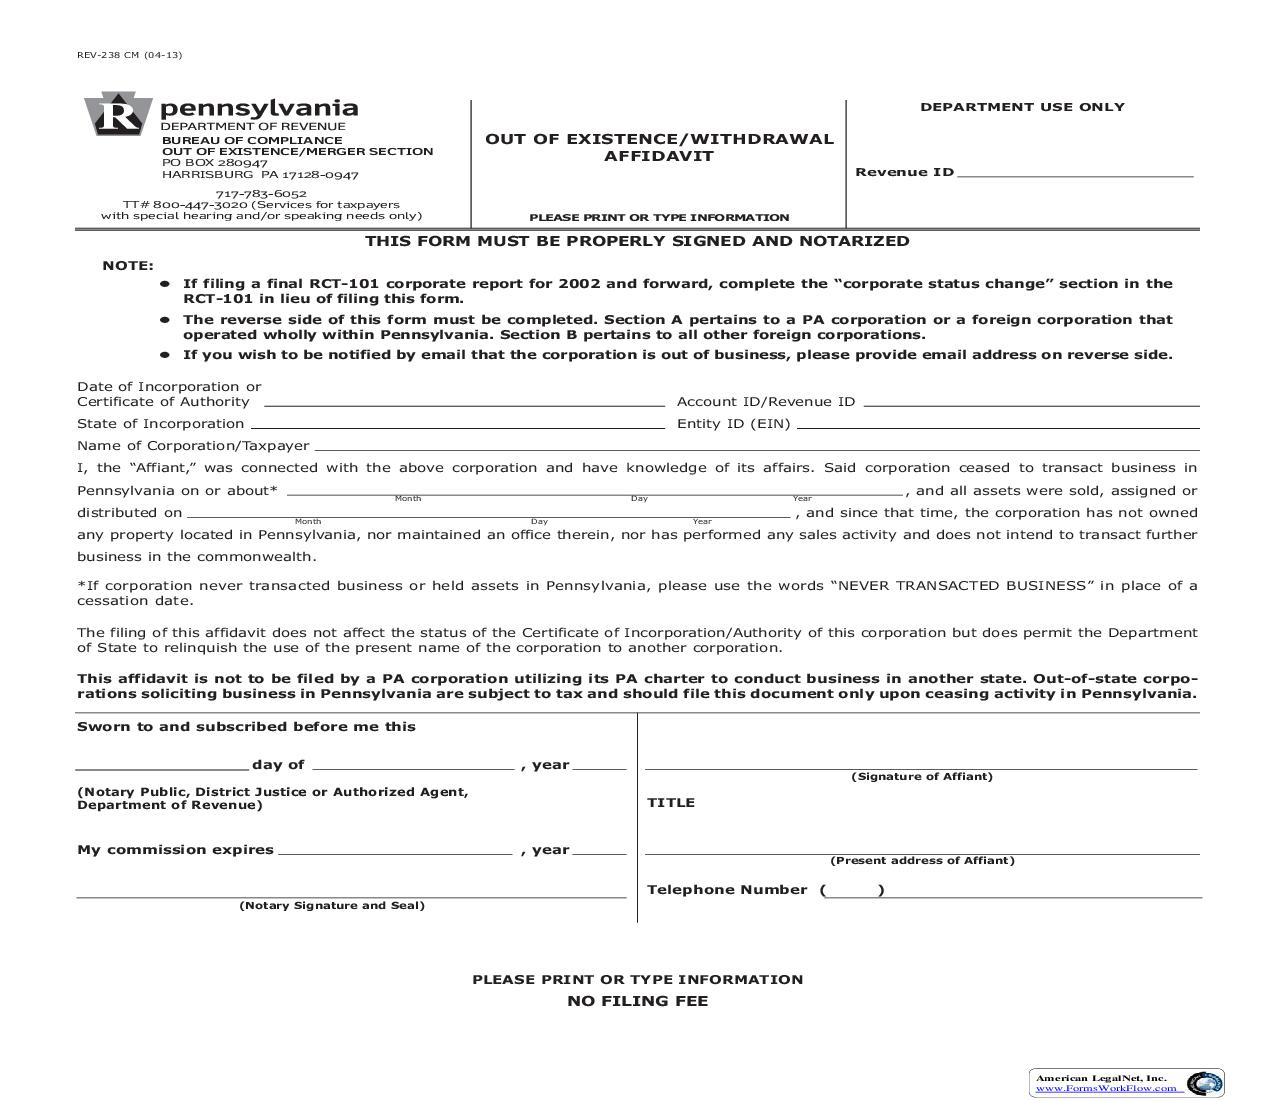 Out Of Existence Withdrawal Affidavit {REV-238} | Pdf Fpdf Doc Docx | Pennsylvania